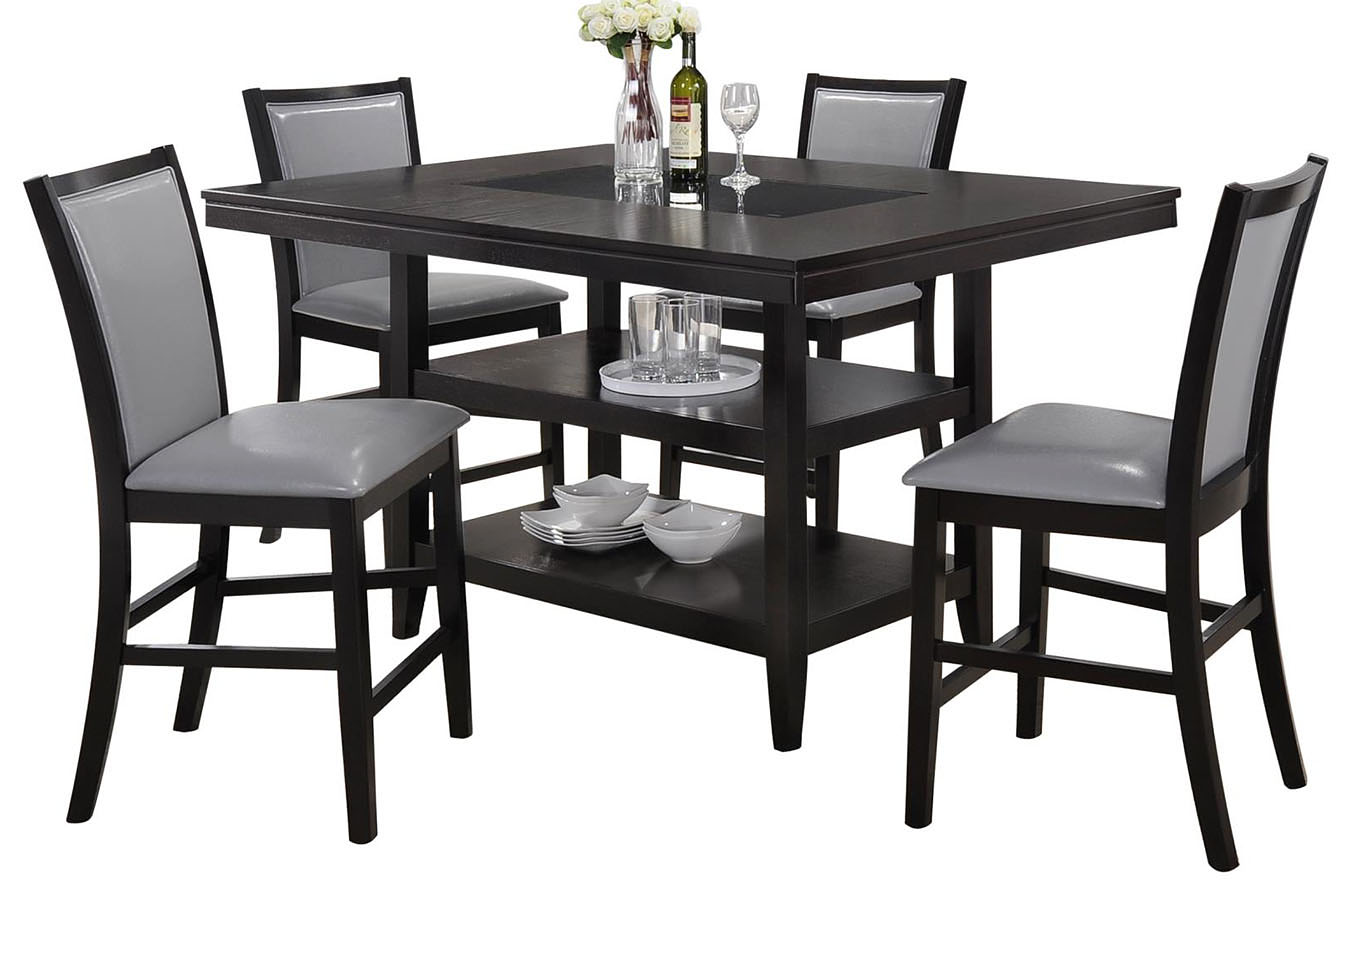 Grazia Black/Gray 5 PC Counter Height Table Set,Home Source